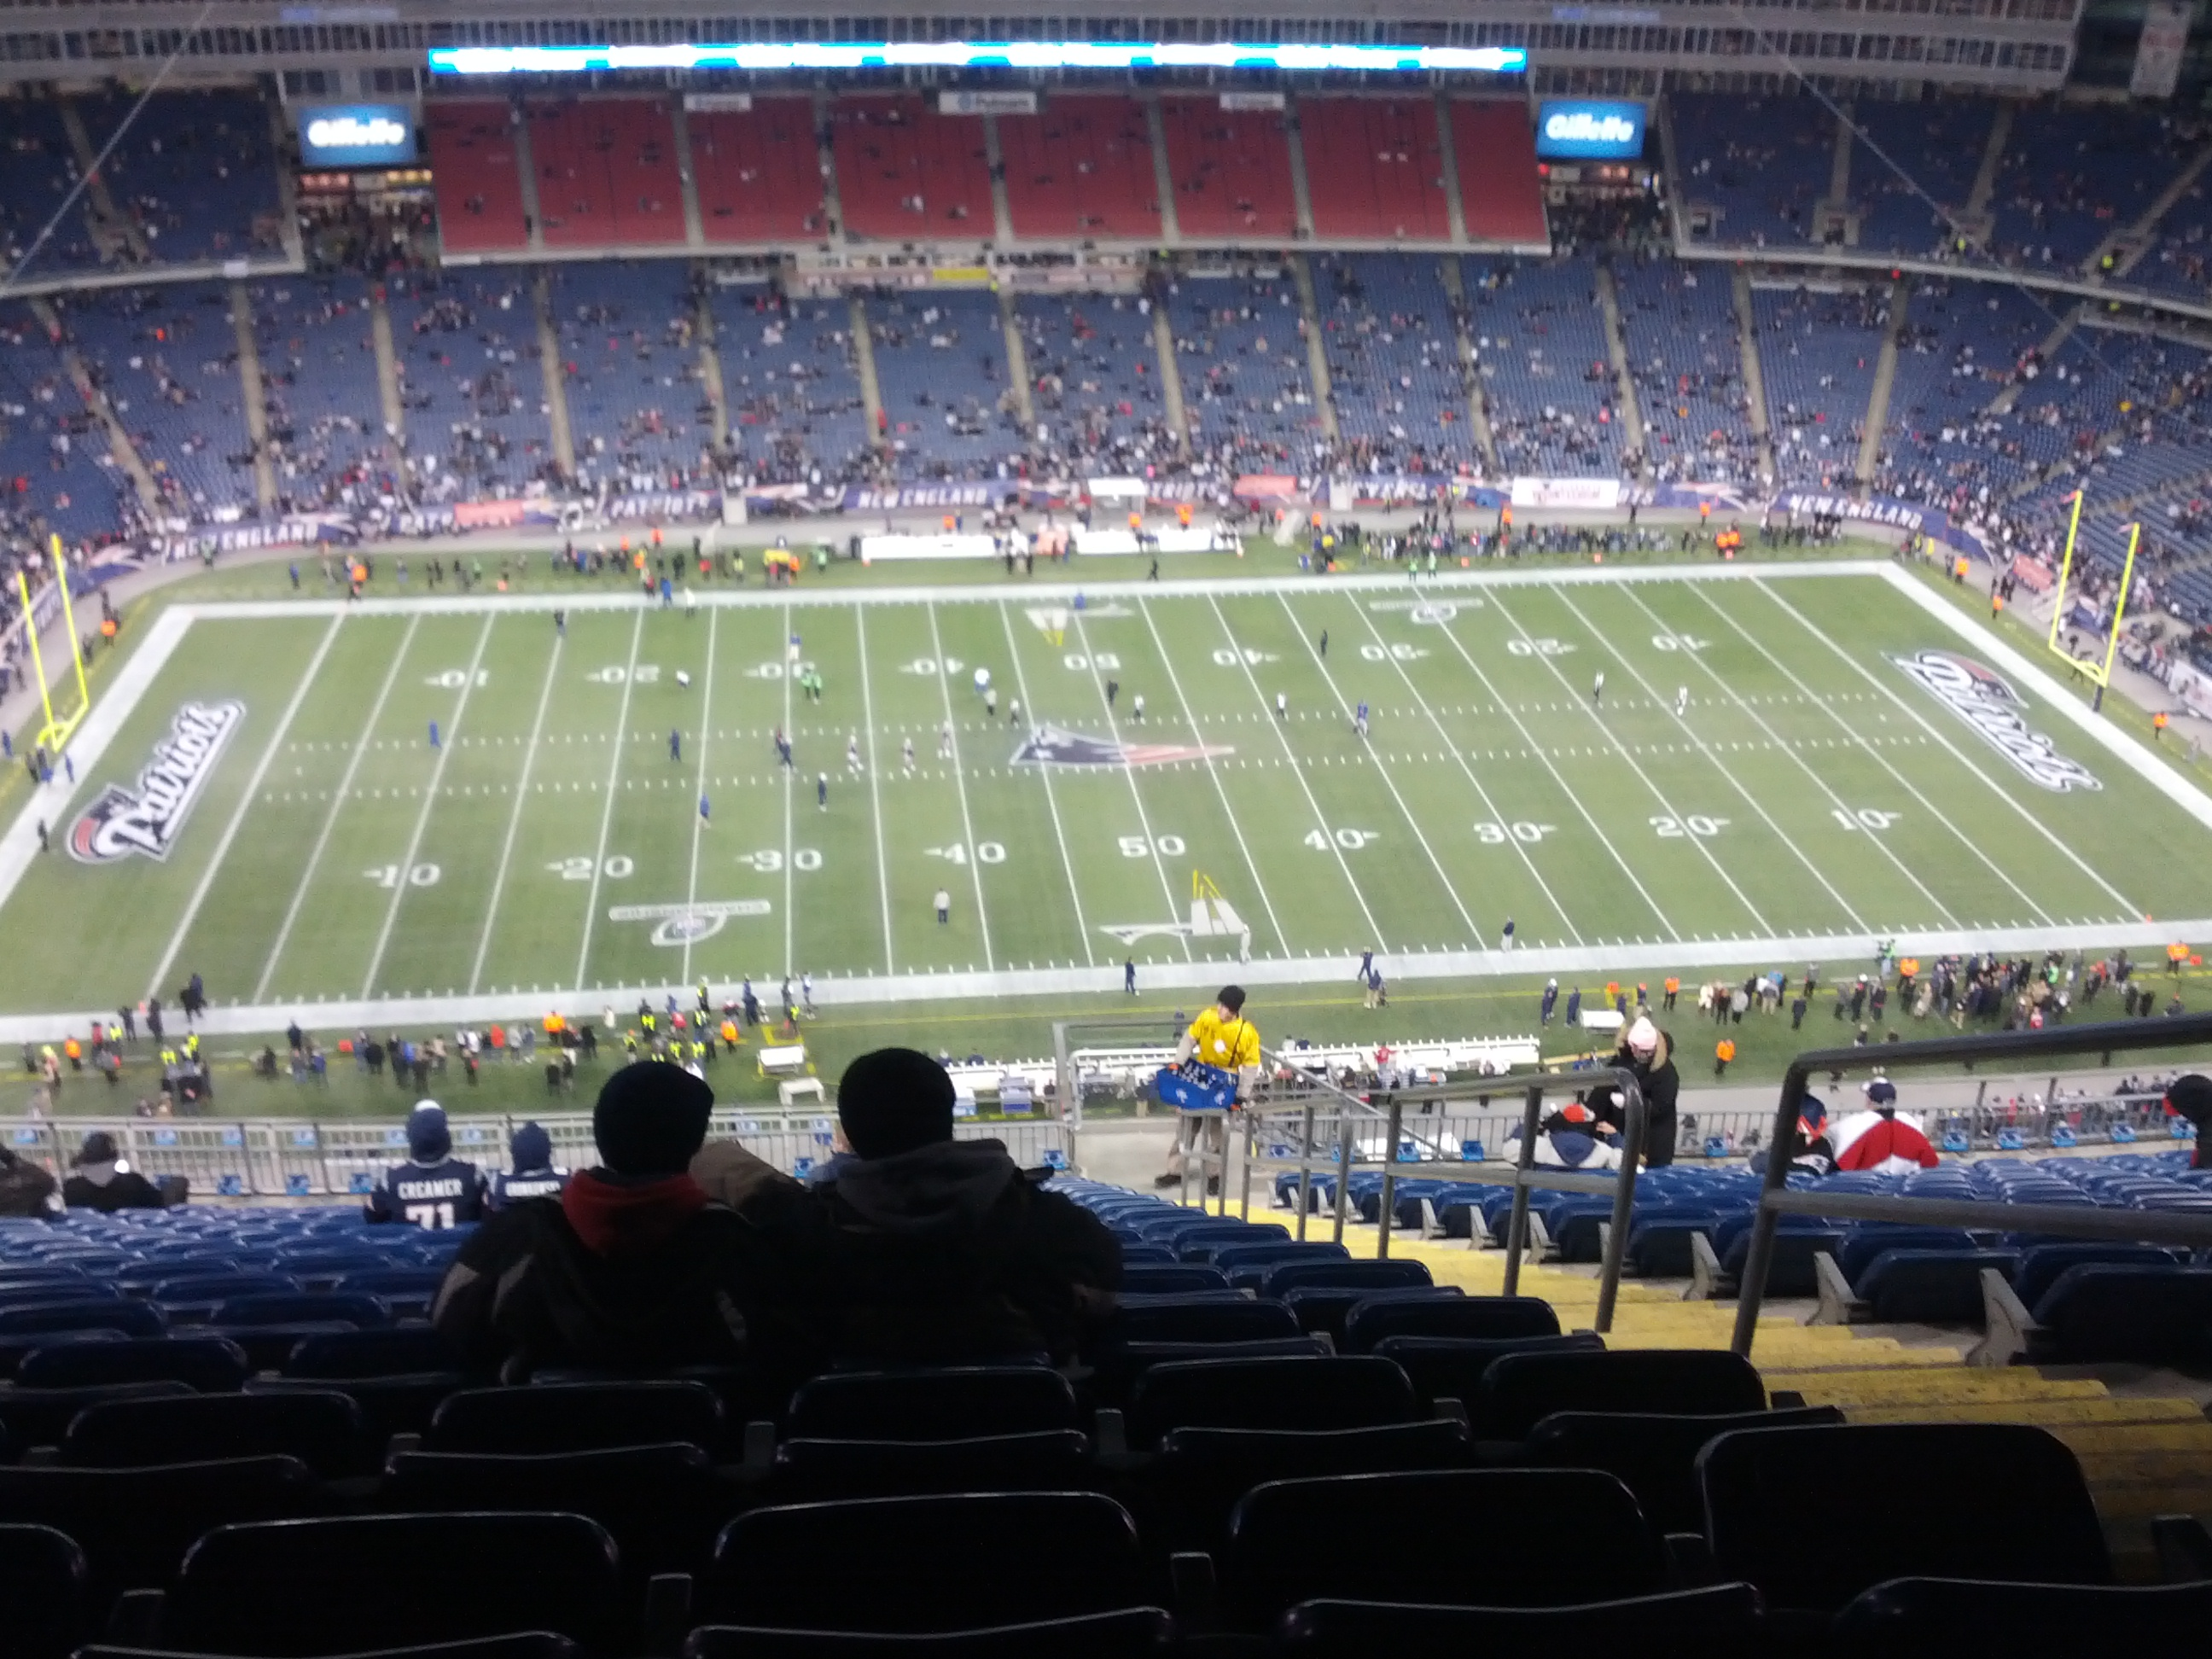 View from the stands at Gillette Stadium